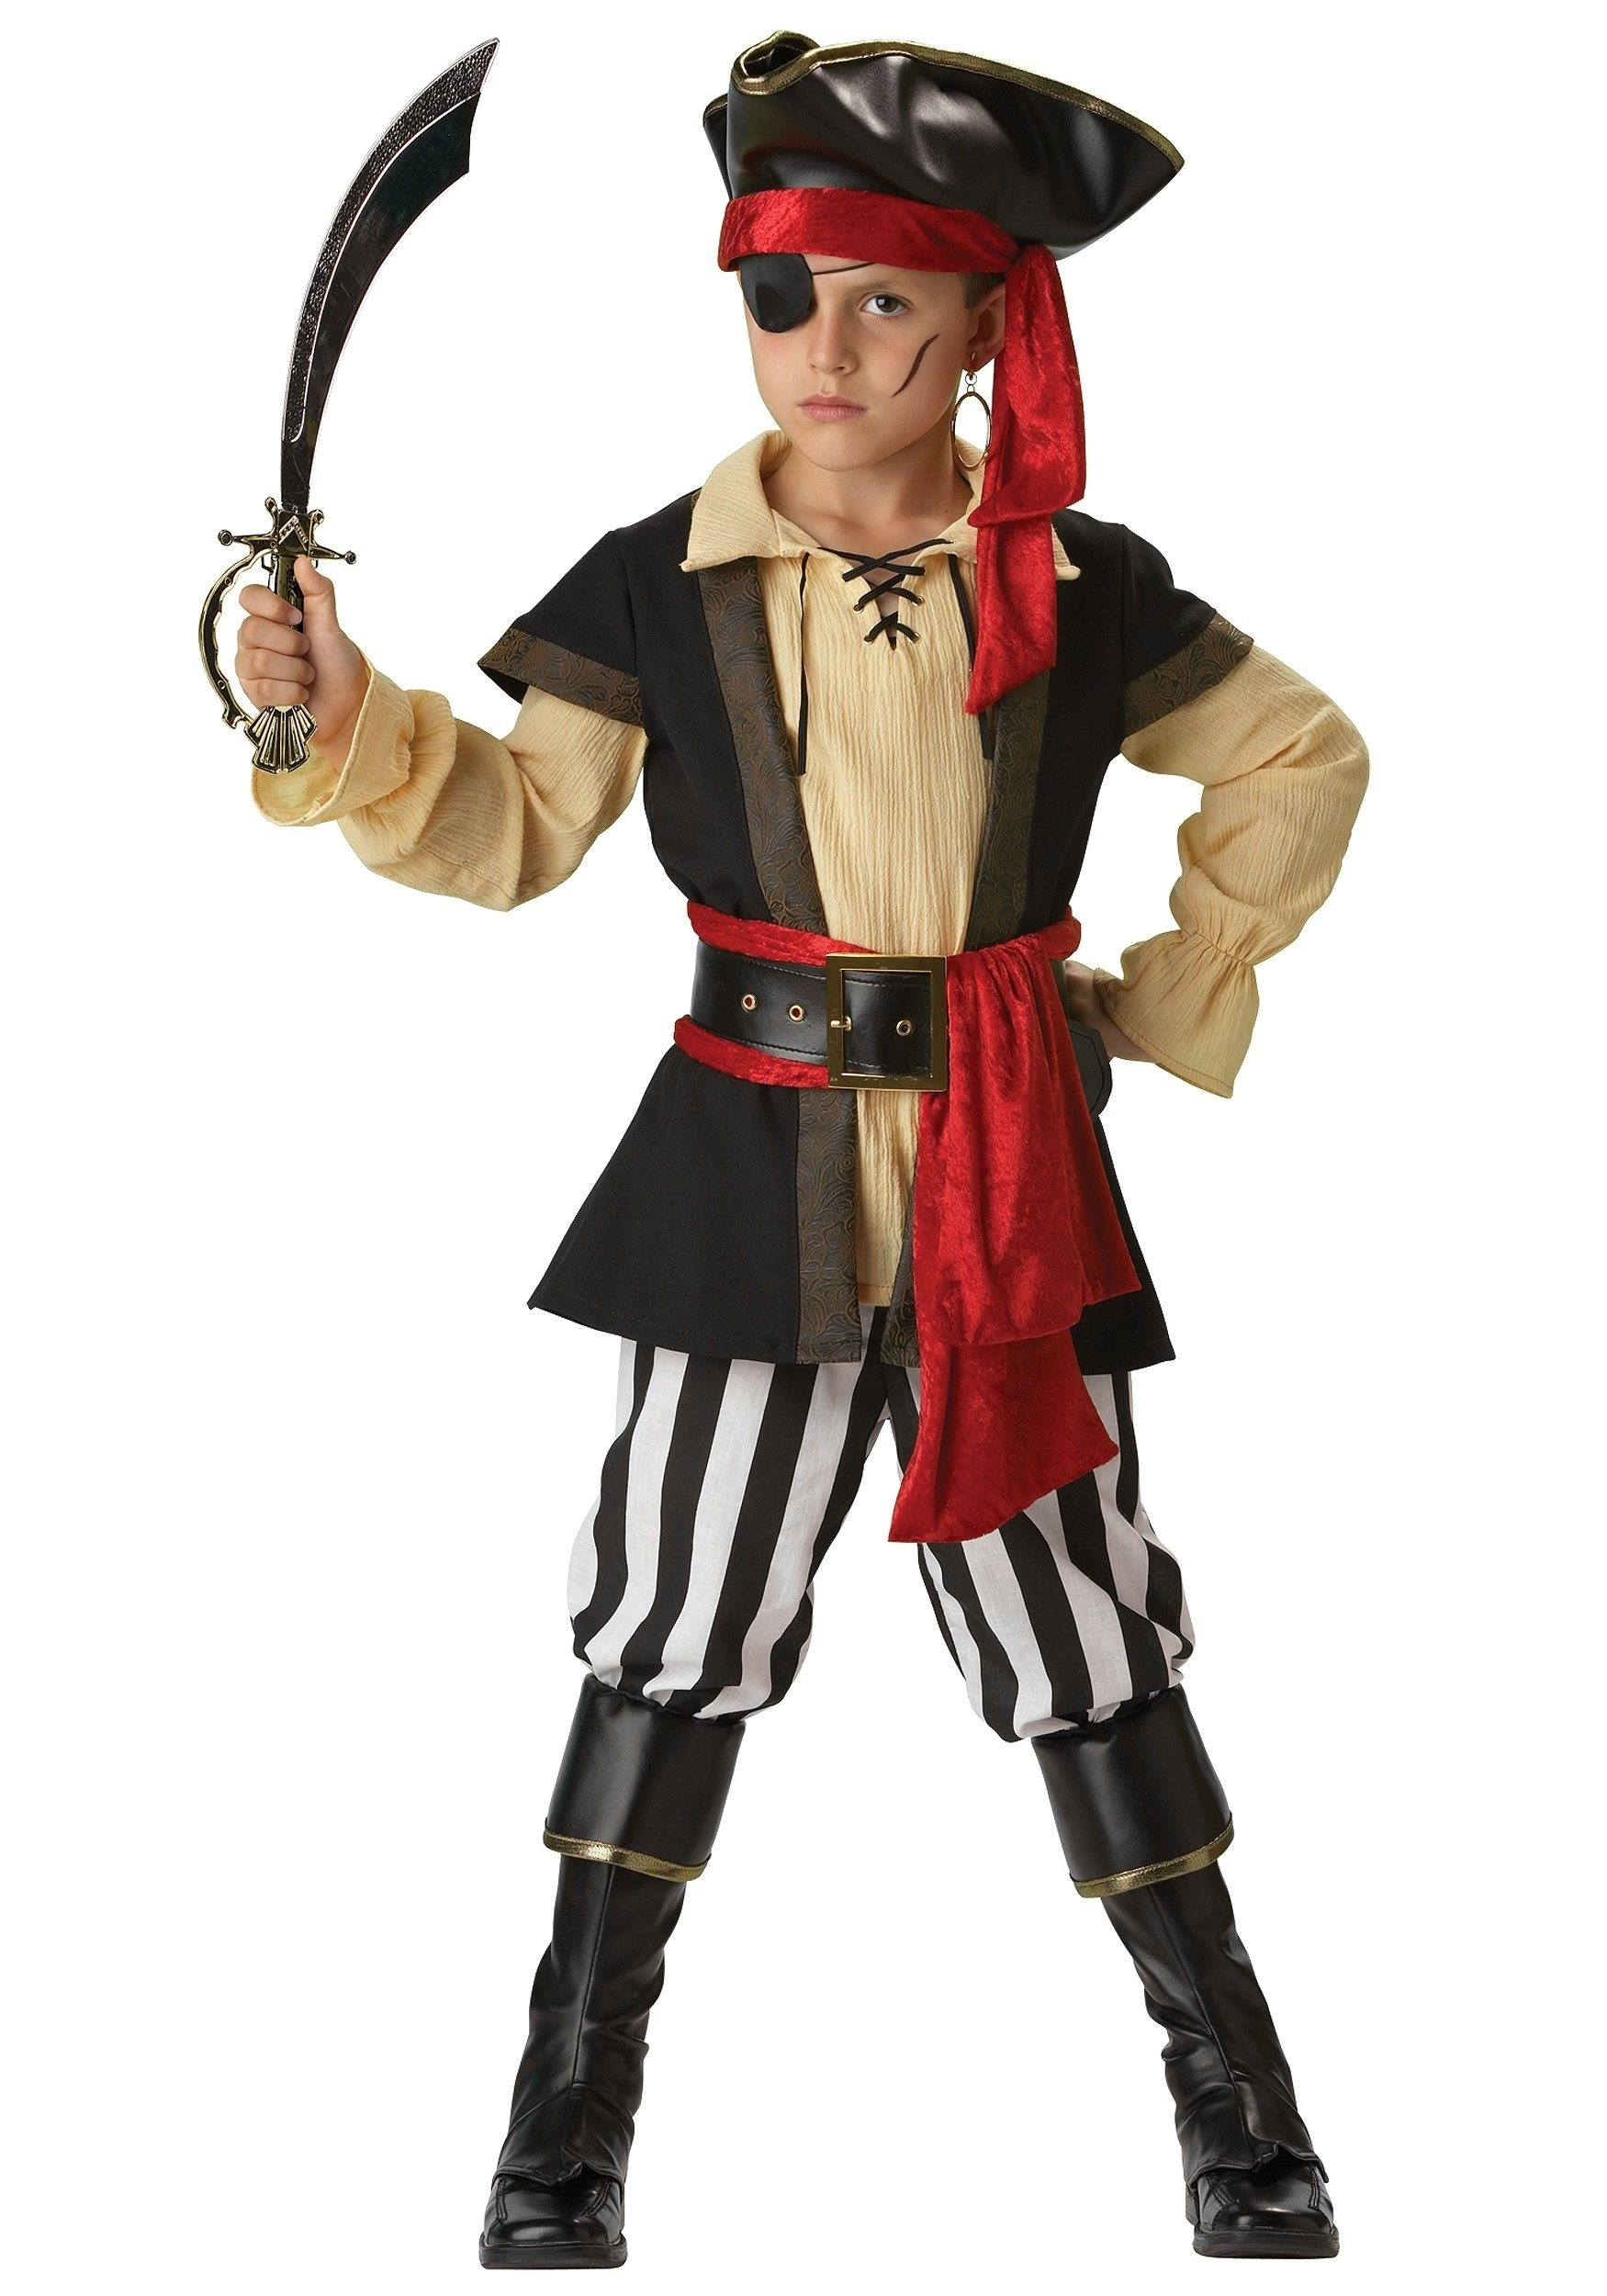 10 Great Pirate Costume Ideas For Kids kids scoundrel pirate costume 2020